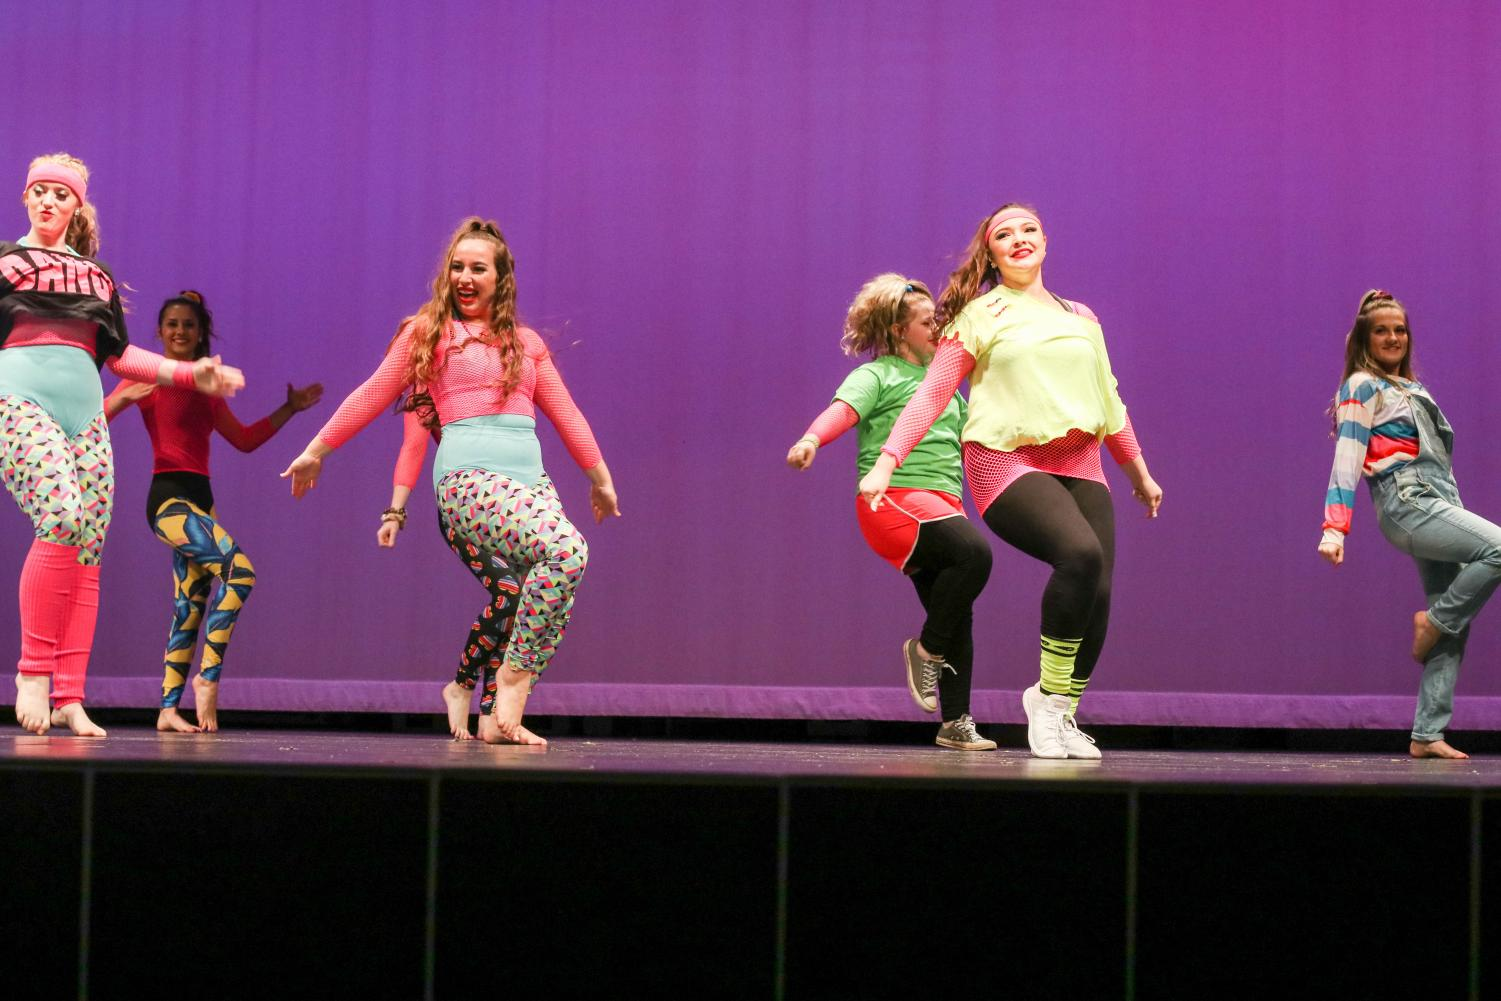 Senior+Lindsey+Roach+performs+a+dance+routine+from+the+1980s+alongside+other+Drill+Team+members.+They+prepare+for+these+routines+for+weeks+before+the+show.